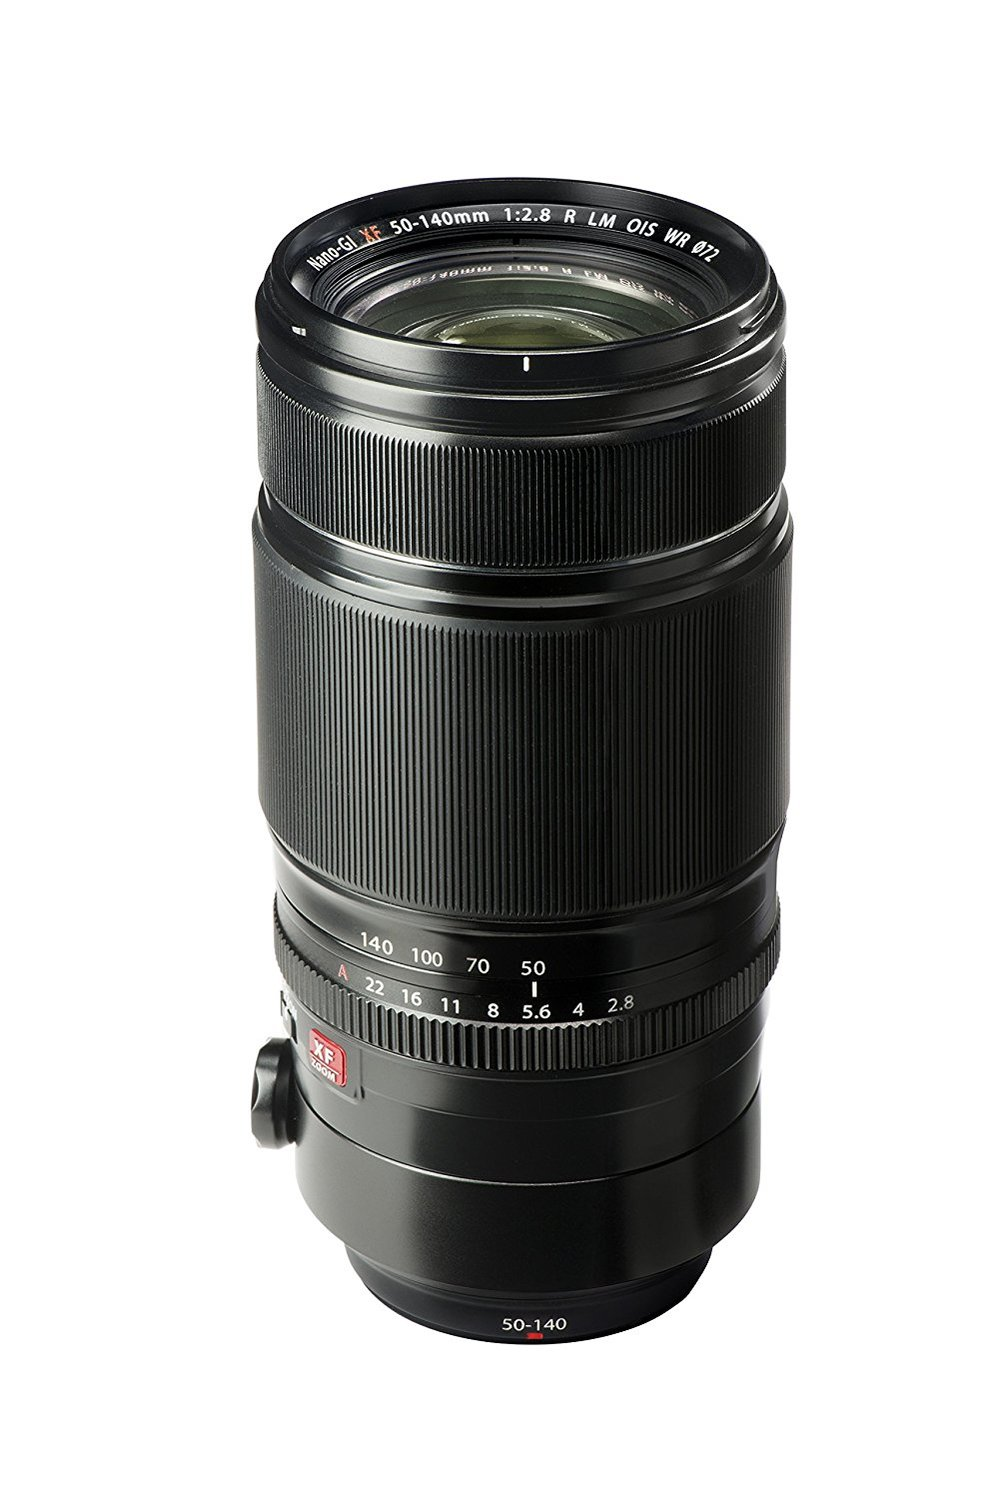 Fuji 50-140mm f/2.8 OIS - If you've got the money (and don't mind the added bulk), this lens is might be the very best option for Fuji portrait photography.The optical quality is as gorgeous as any Fuji prime, and it comes chock-full of vital features perfectly suited to benefit portrait photographers: the added in weather resistance ensures you can shoot in rain or snow, and the optical image stabilization is a huge help when you're shutter is stopped down fast enough to accommodate the beastly 140 focal length.While the price fairly reflects the value, it's a bit hard to stomach for some.But if you're looking to add a lens to your collection for the long haul, this lens would make an amazing investment for your portrait photography business.